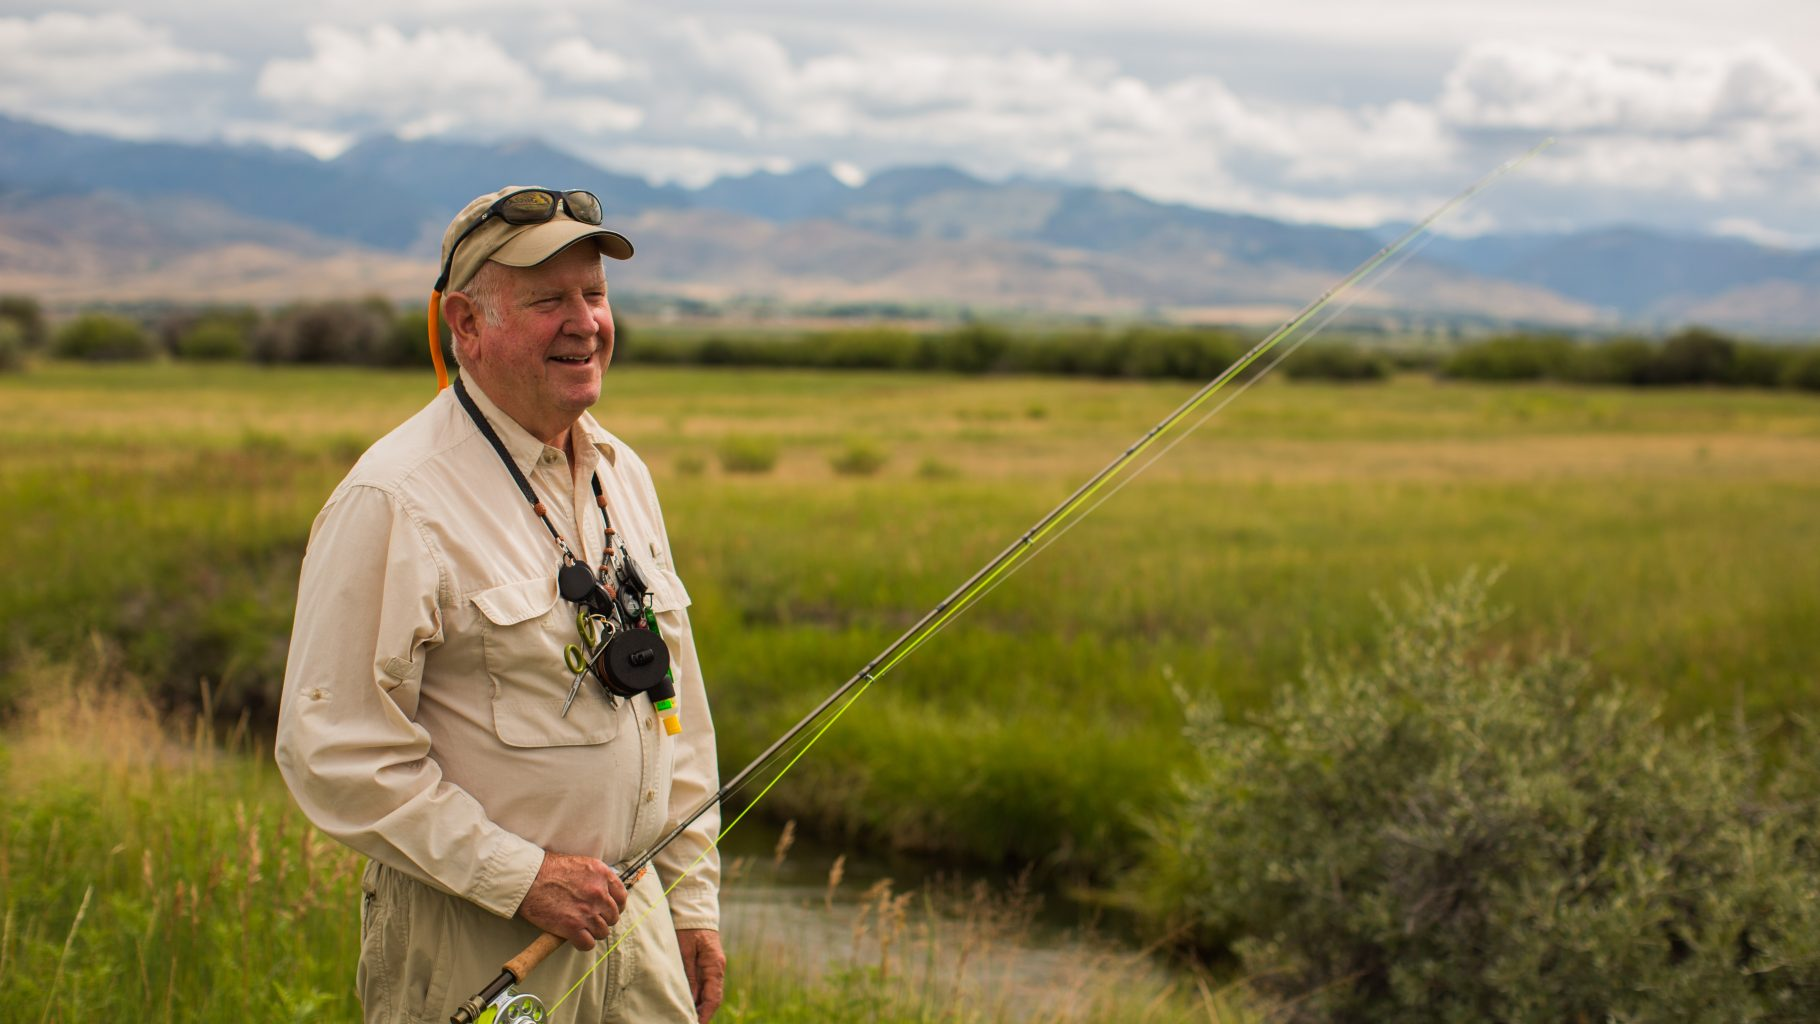 Can Fly Fishing Help Veterans Heal?